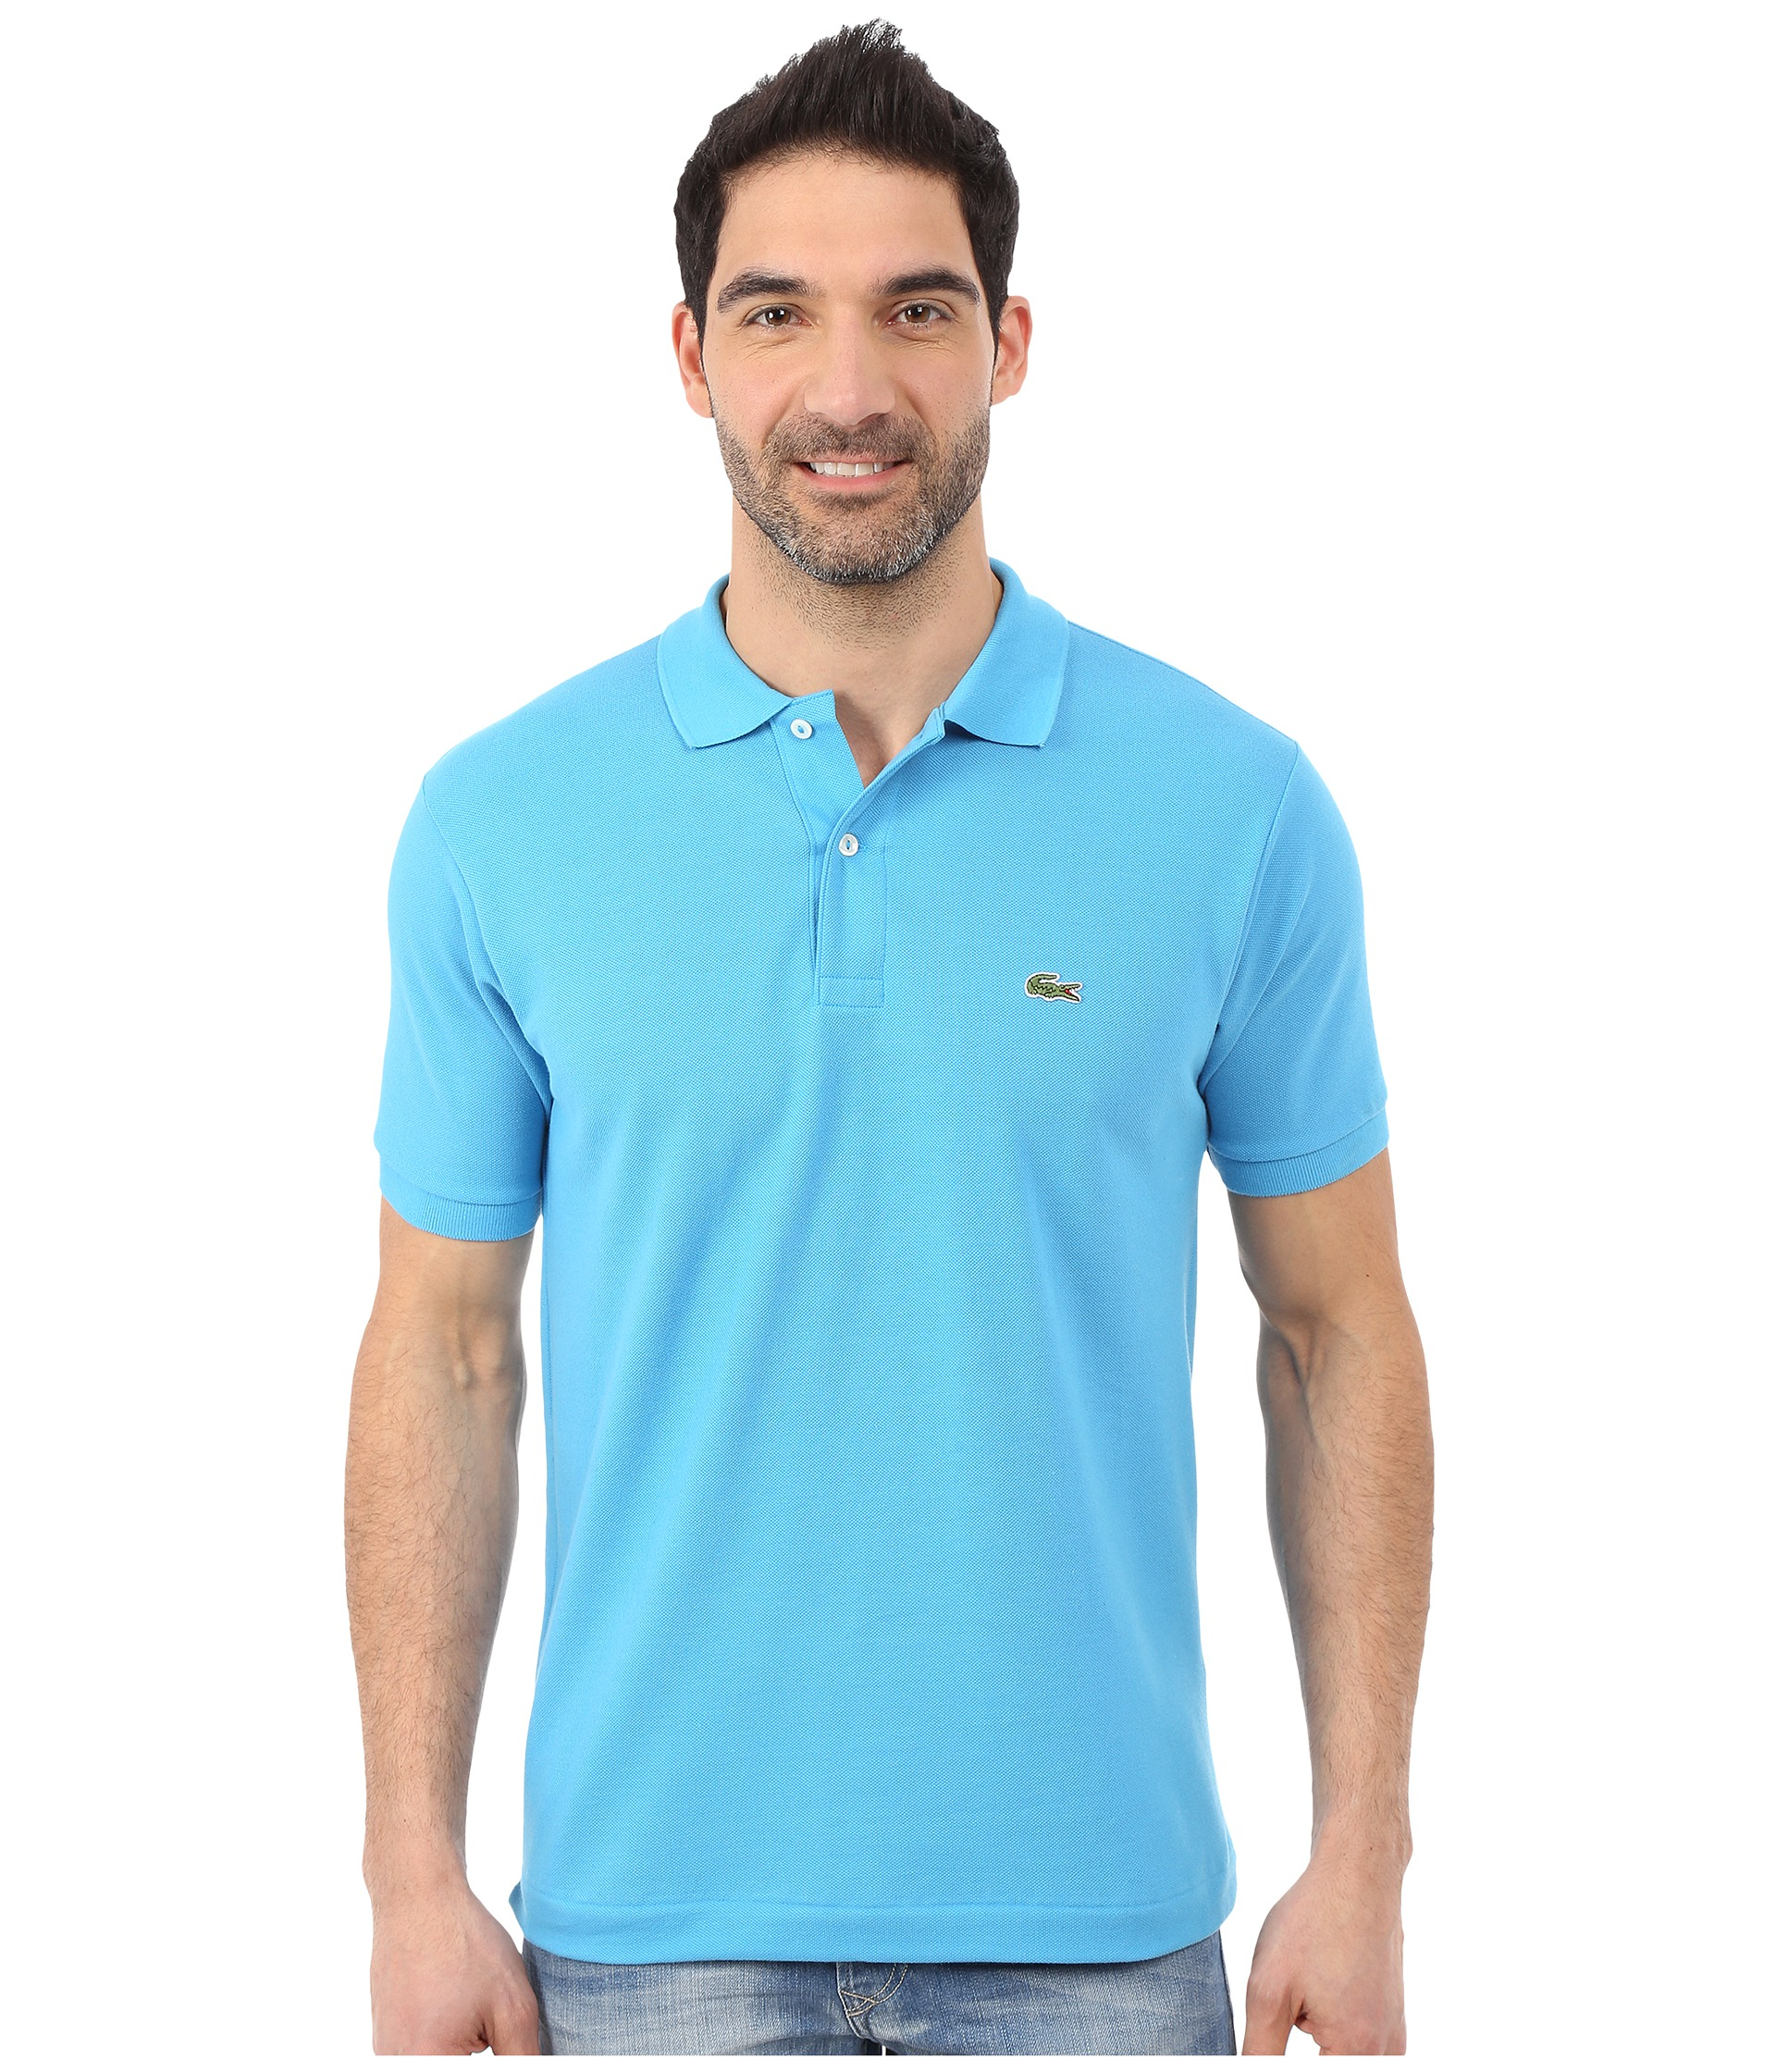 Blue lacoste polo shirt for men male models picture for Man in polo shirt